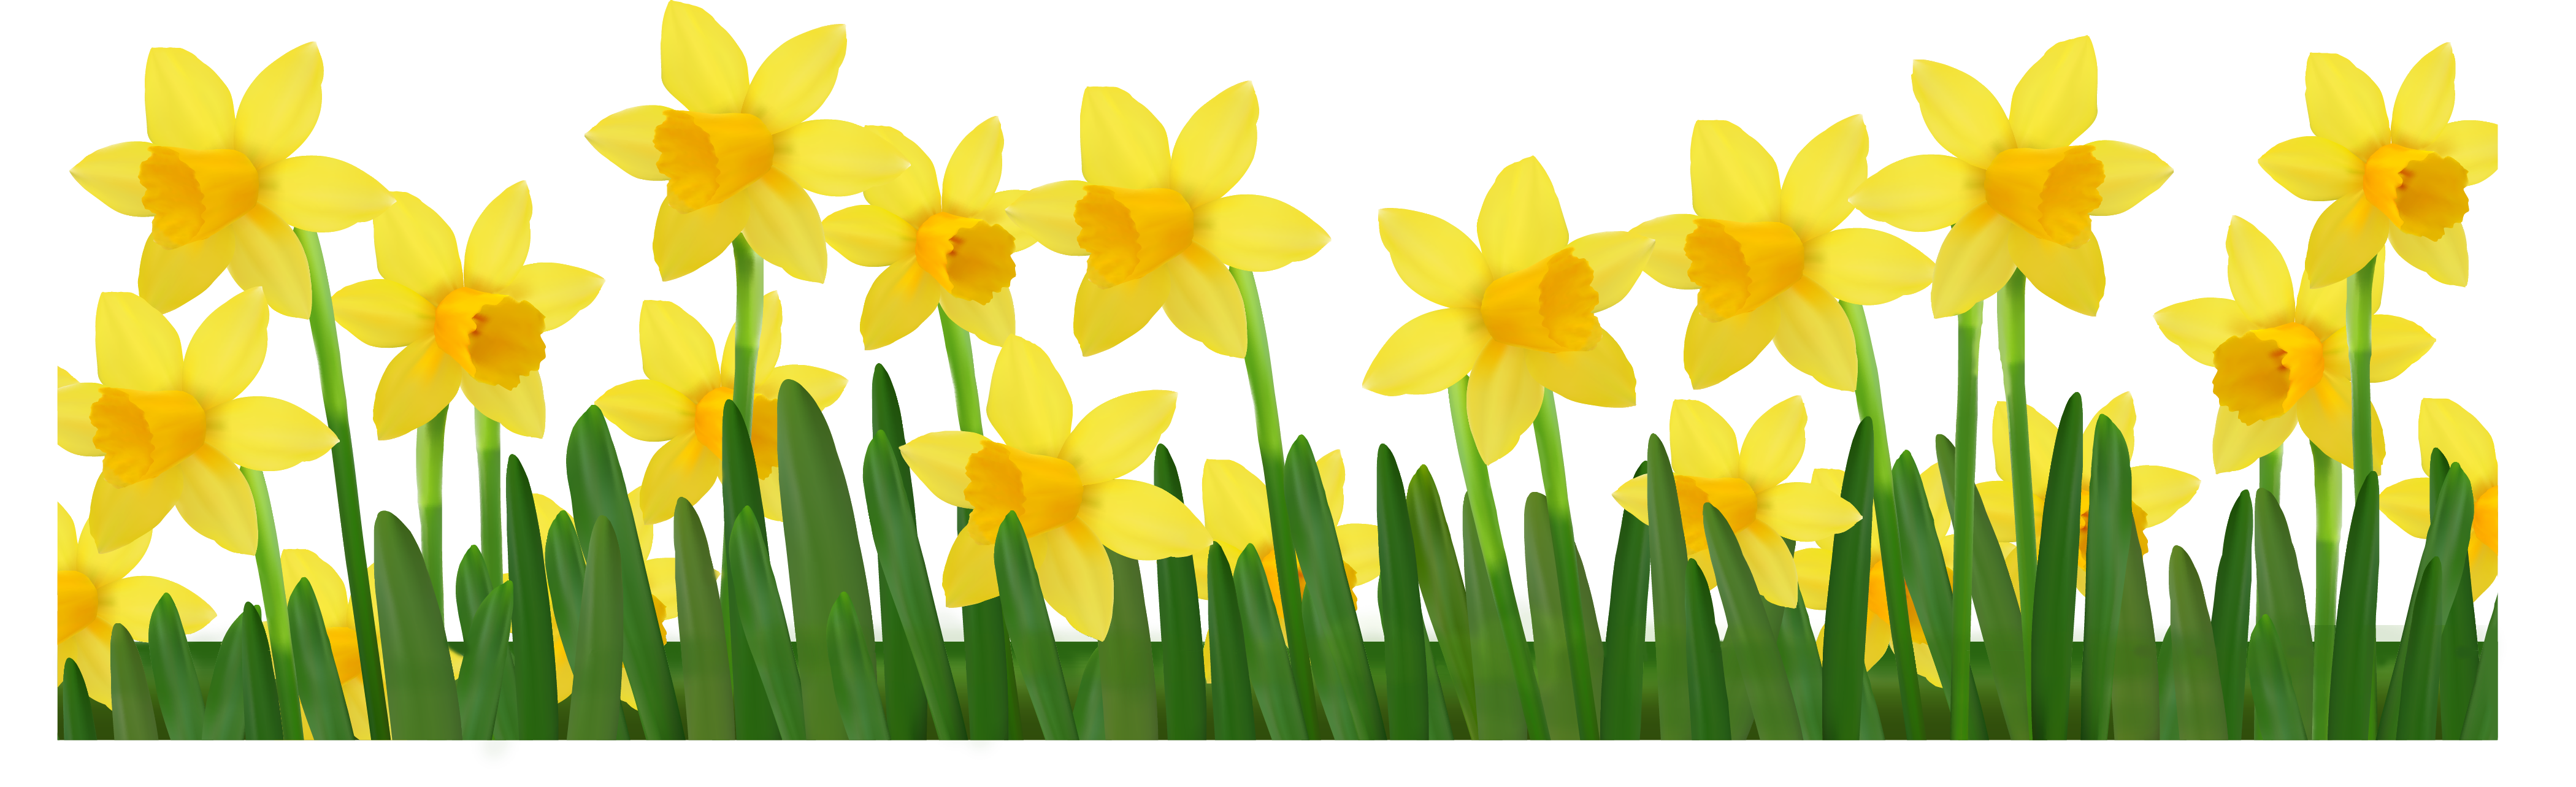 Daffodils Picture - Cliparts.co